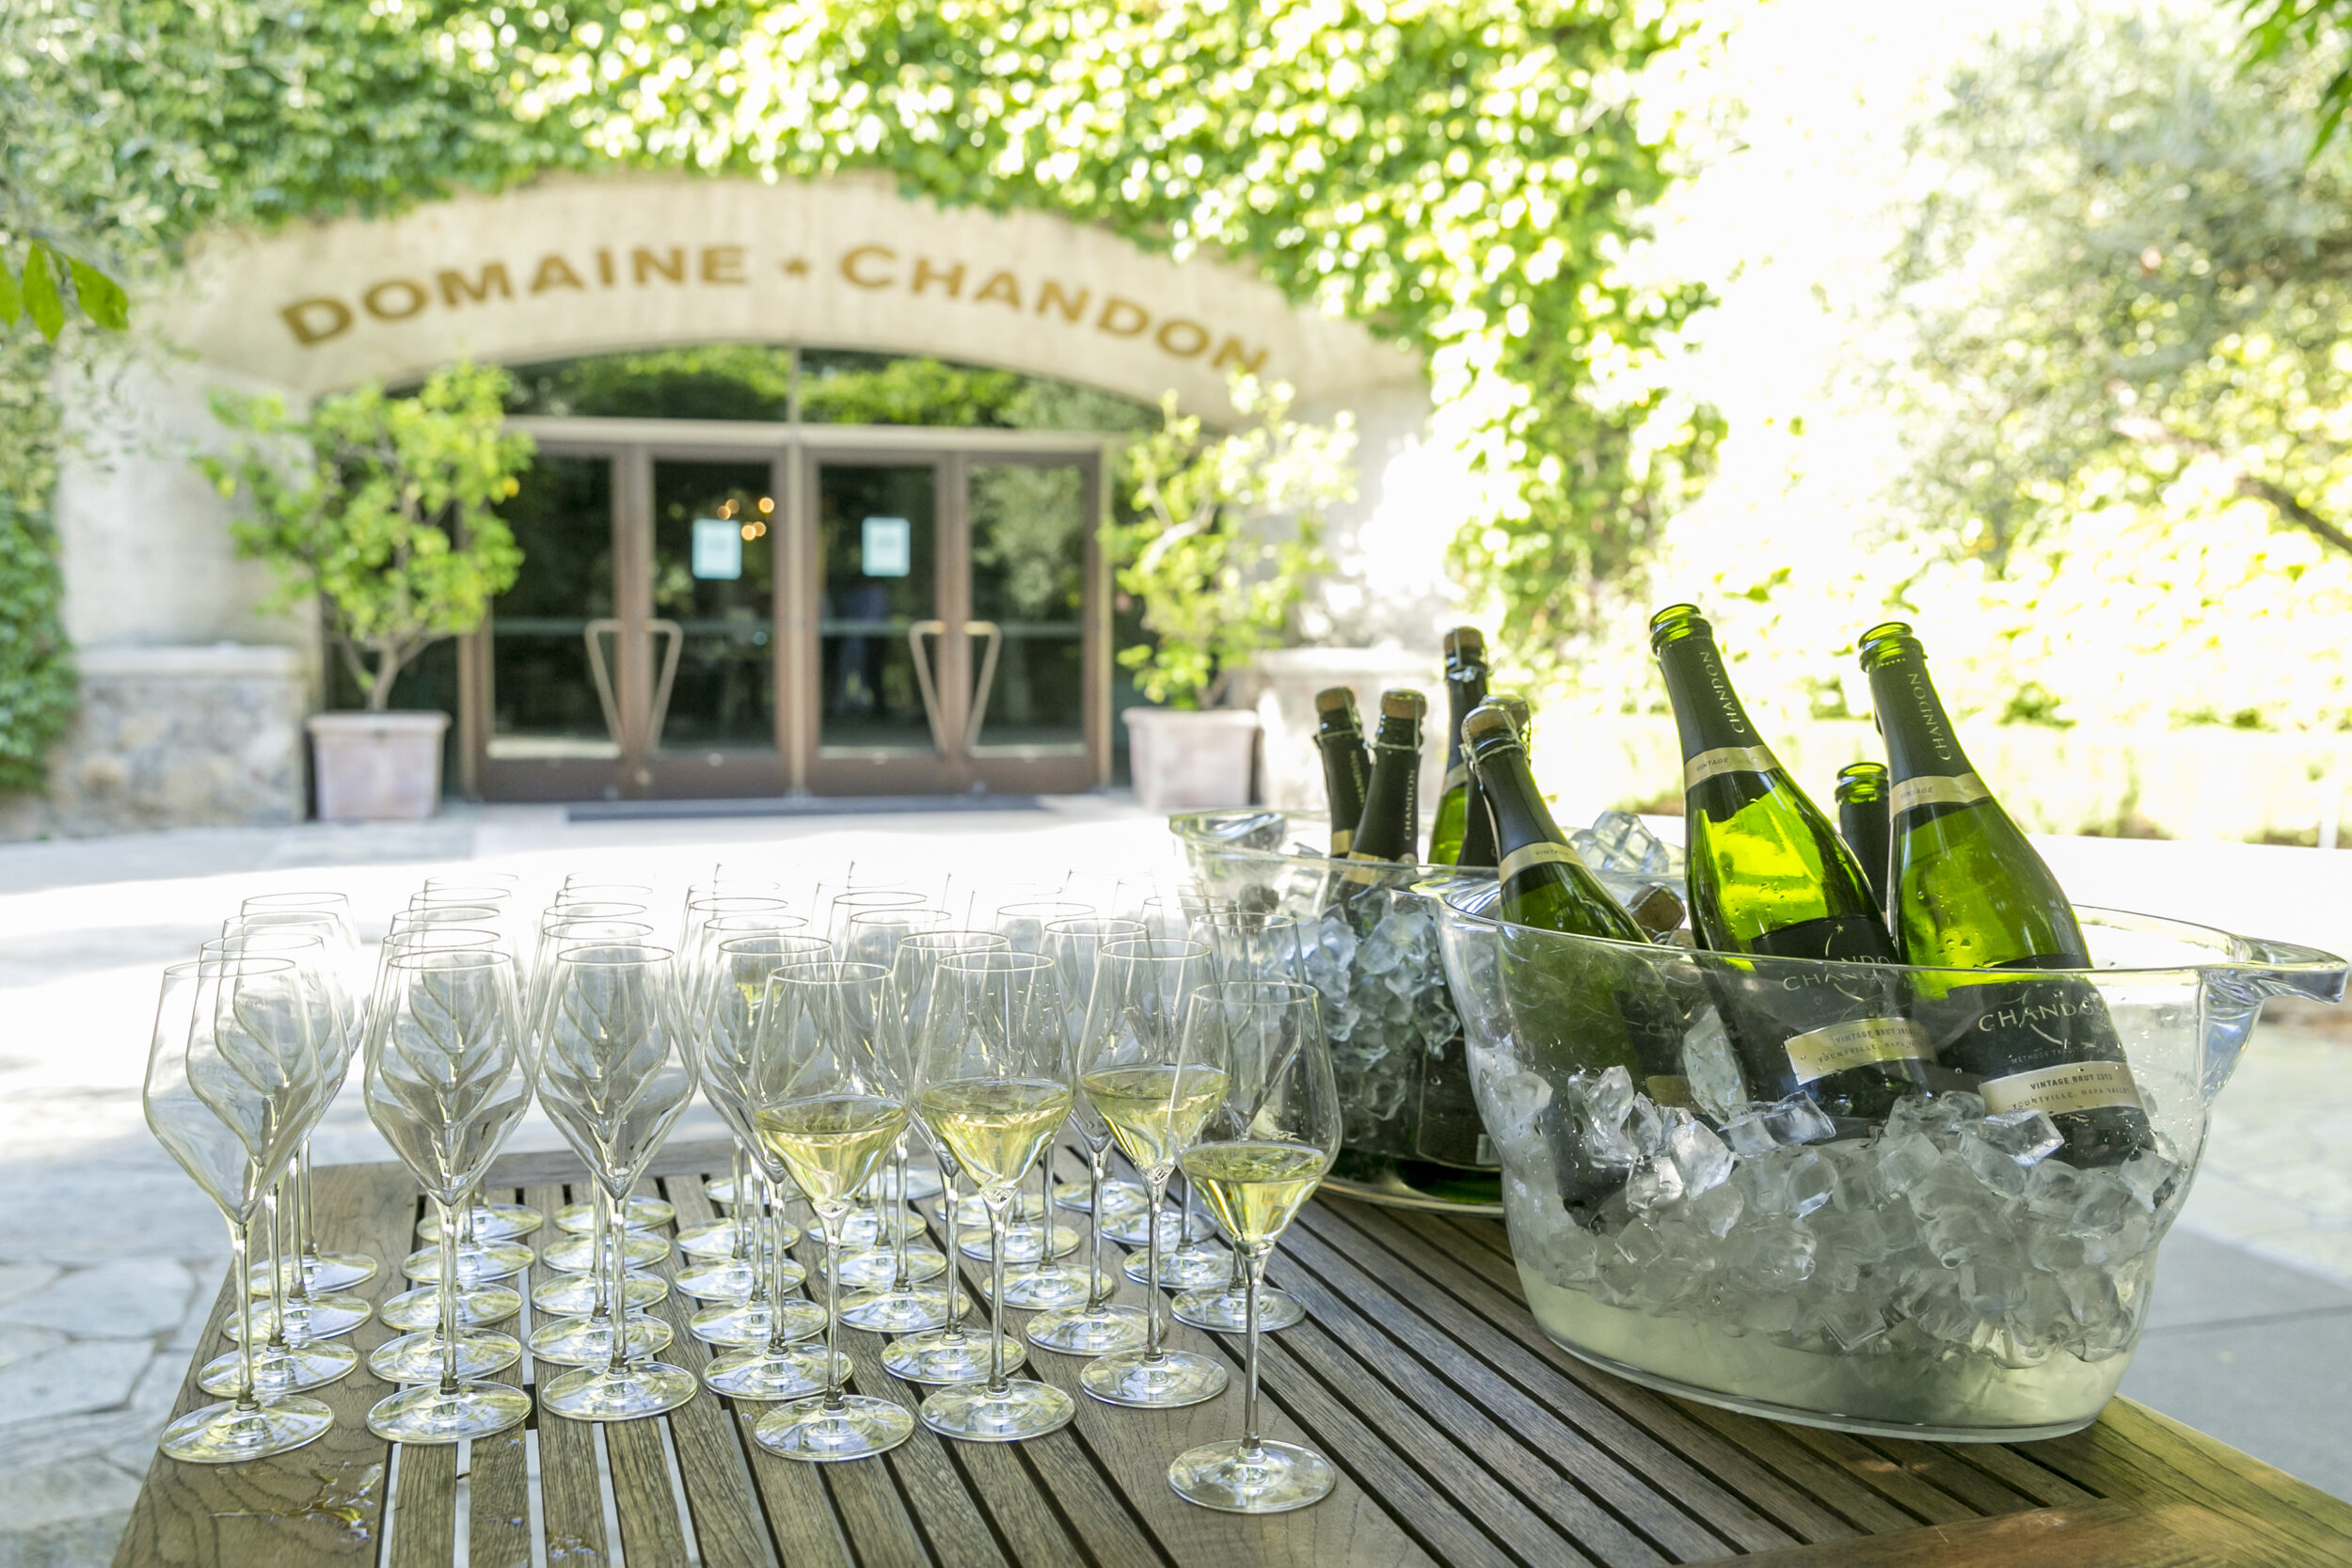 Domaine Chandon Event 6.10.19_70.jpg